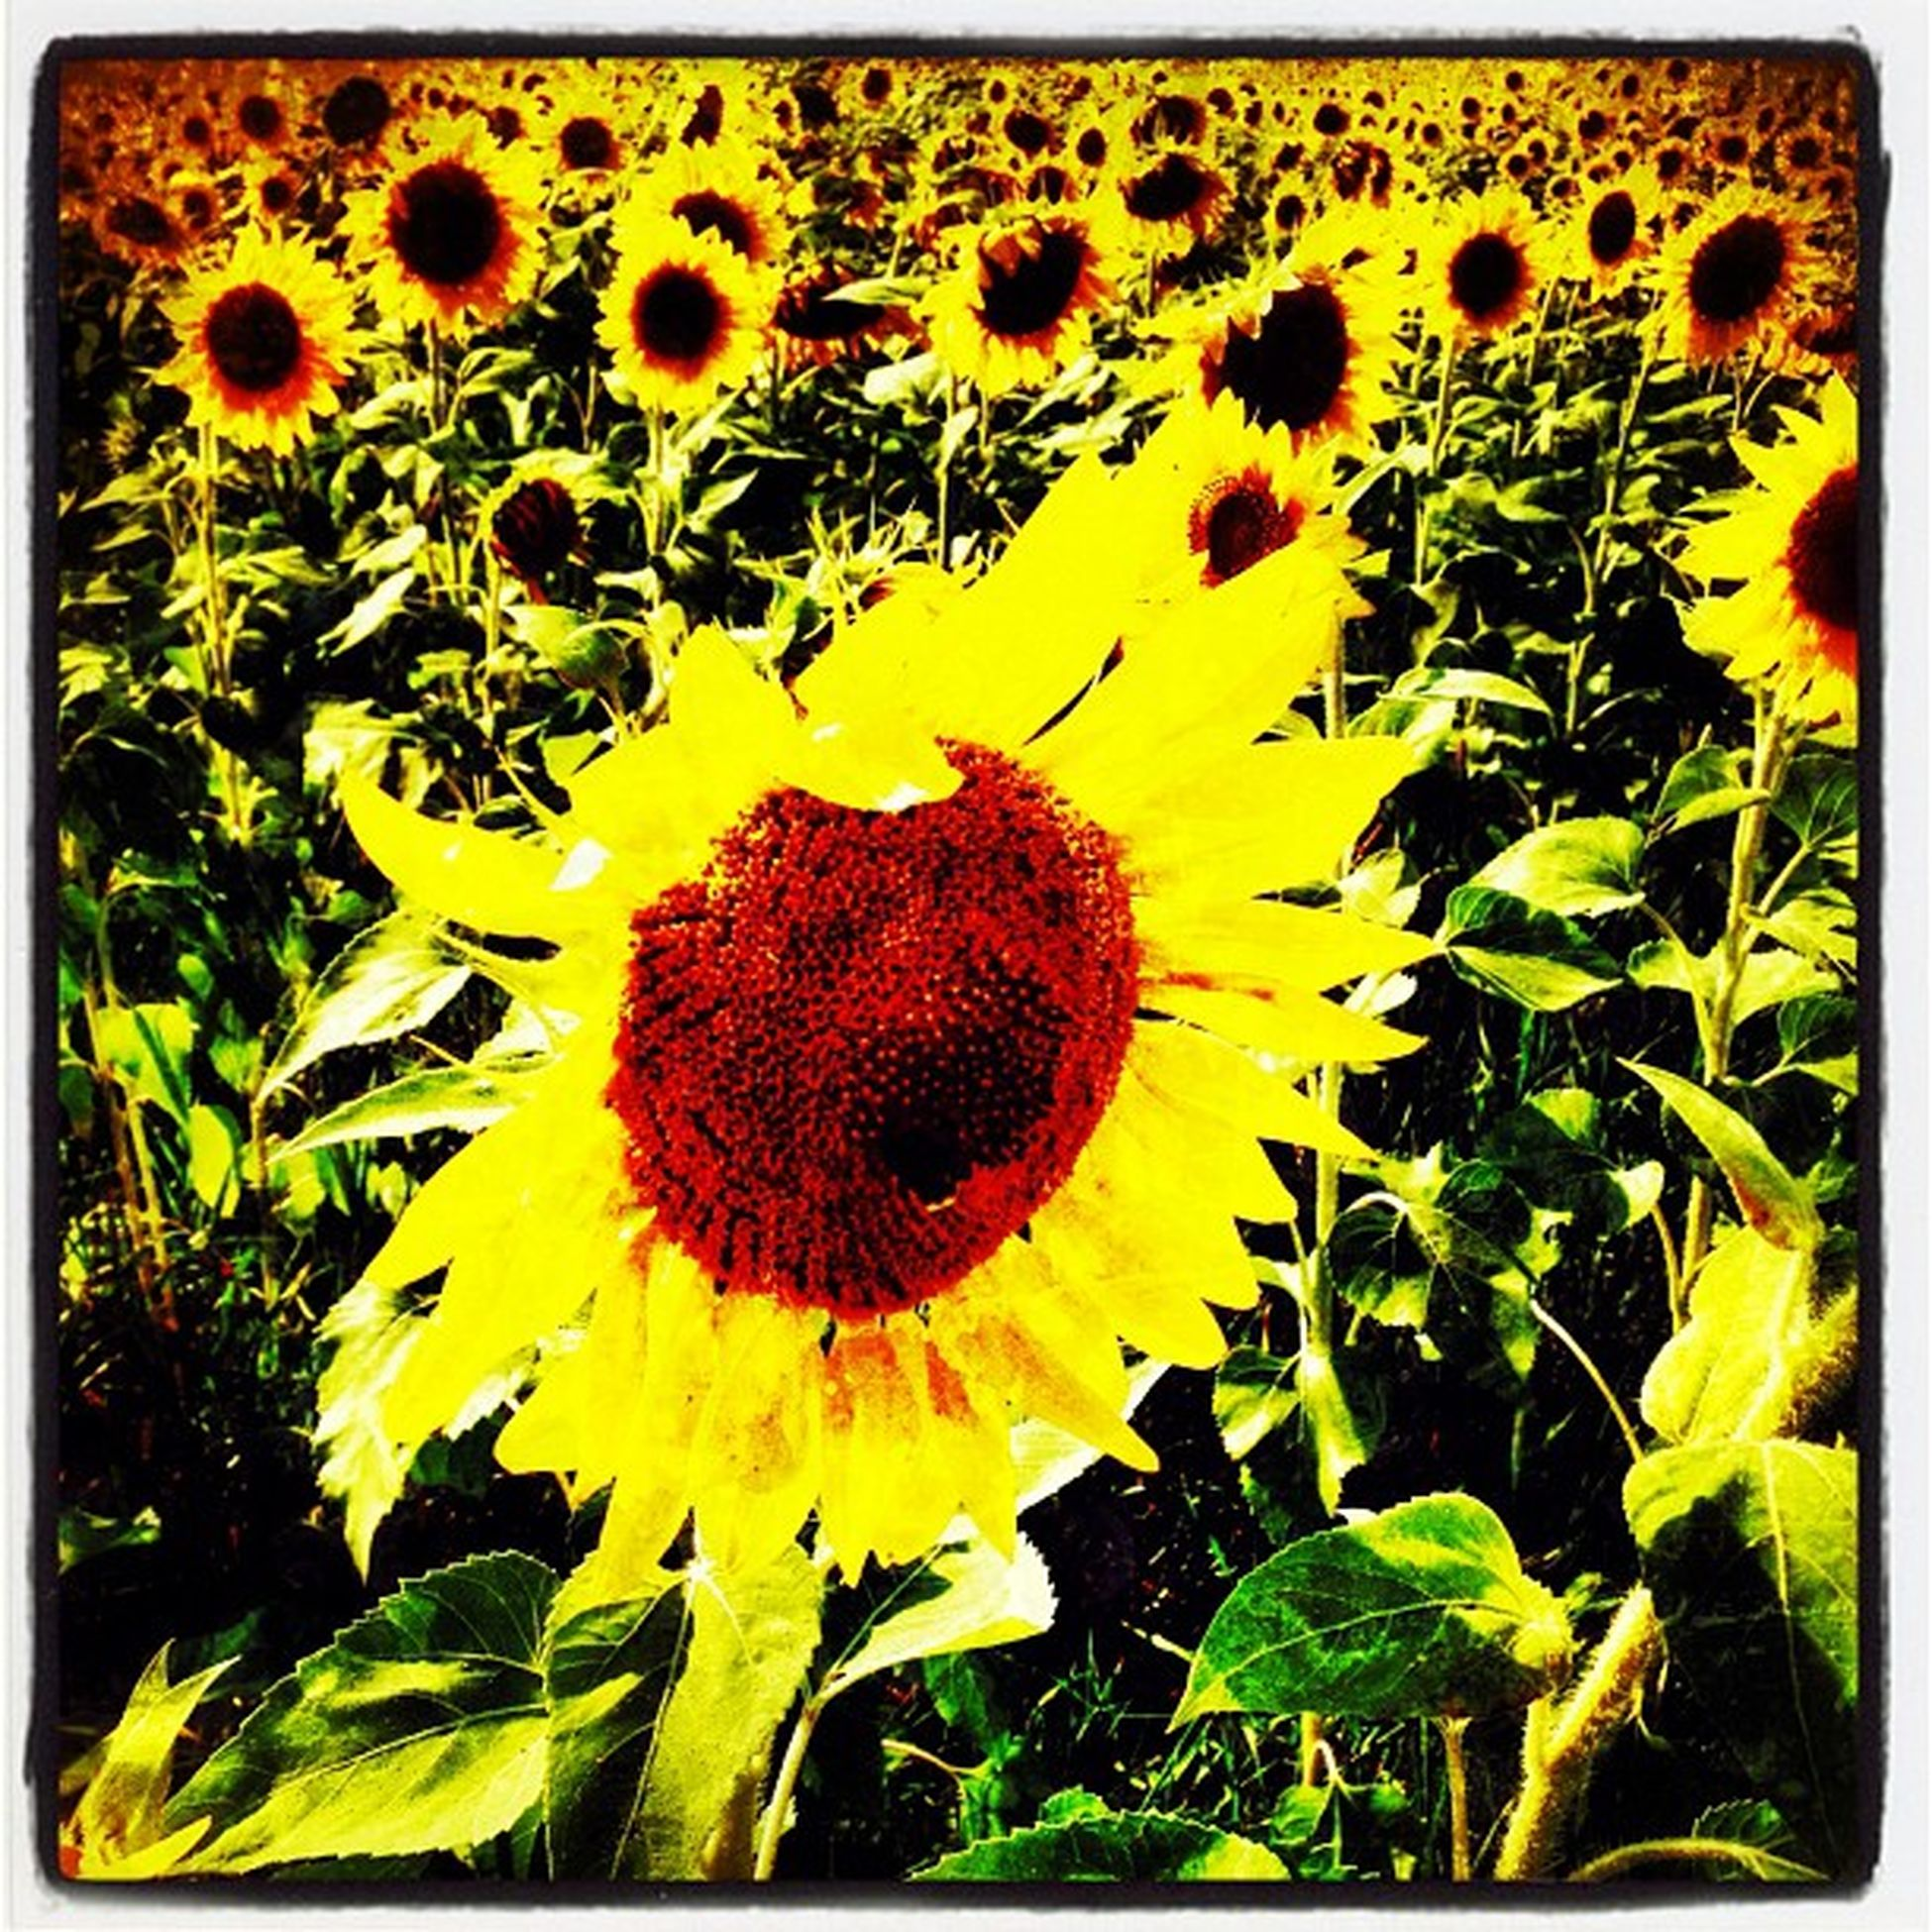 Field of Sun Flowers. #GrandIsle #vt Gmy Iphonegraphy Flowers Vt Field Vt_scenery Pretty Vermont_scenery Farm 802 Iphoneonly Igharjit Photooftheday Vermontbyvermonters Picoftheday Vt_scene Vermont Vermont_scene Sunflowers Igvermont Instamood Igvt Instagood Grandisle Instagramhub Instagramjit Webstagram EyeCandy